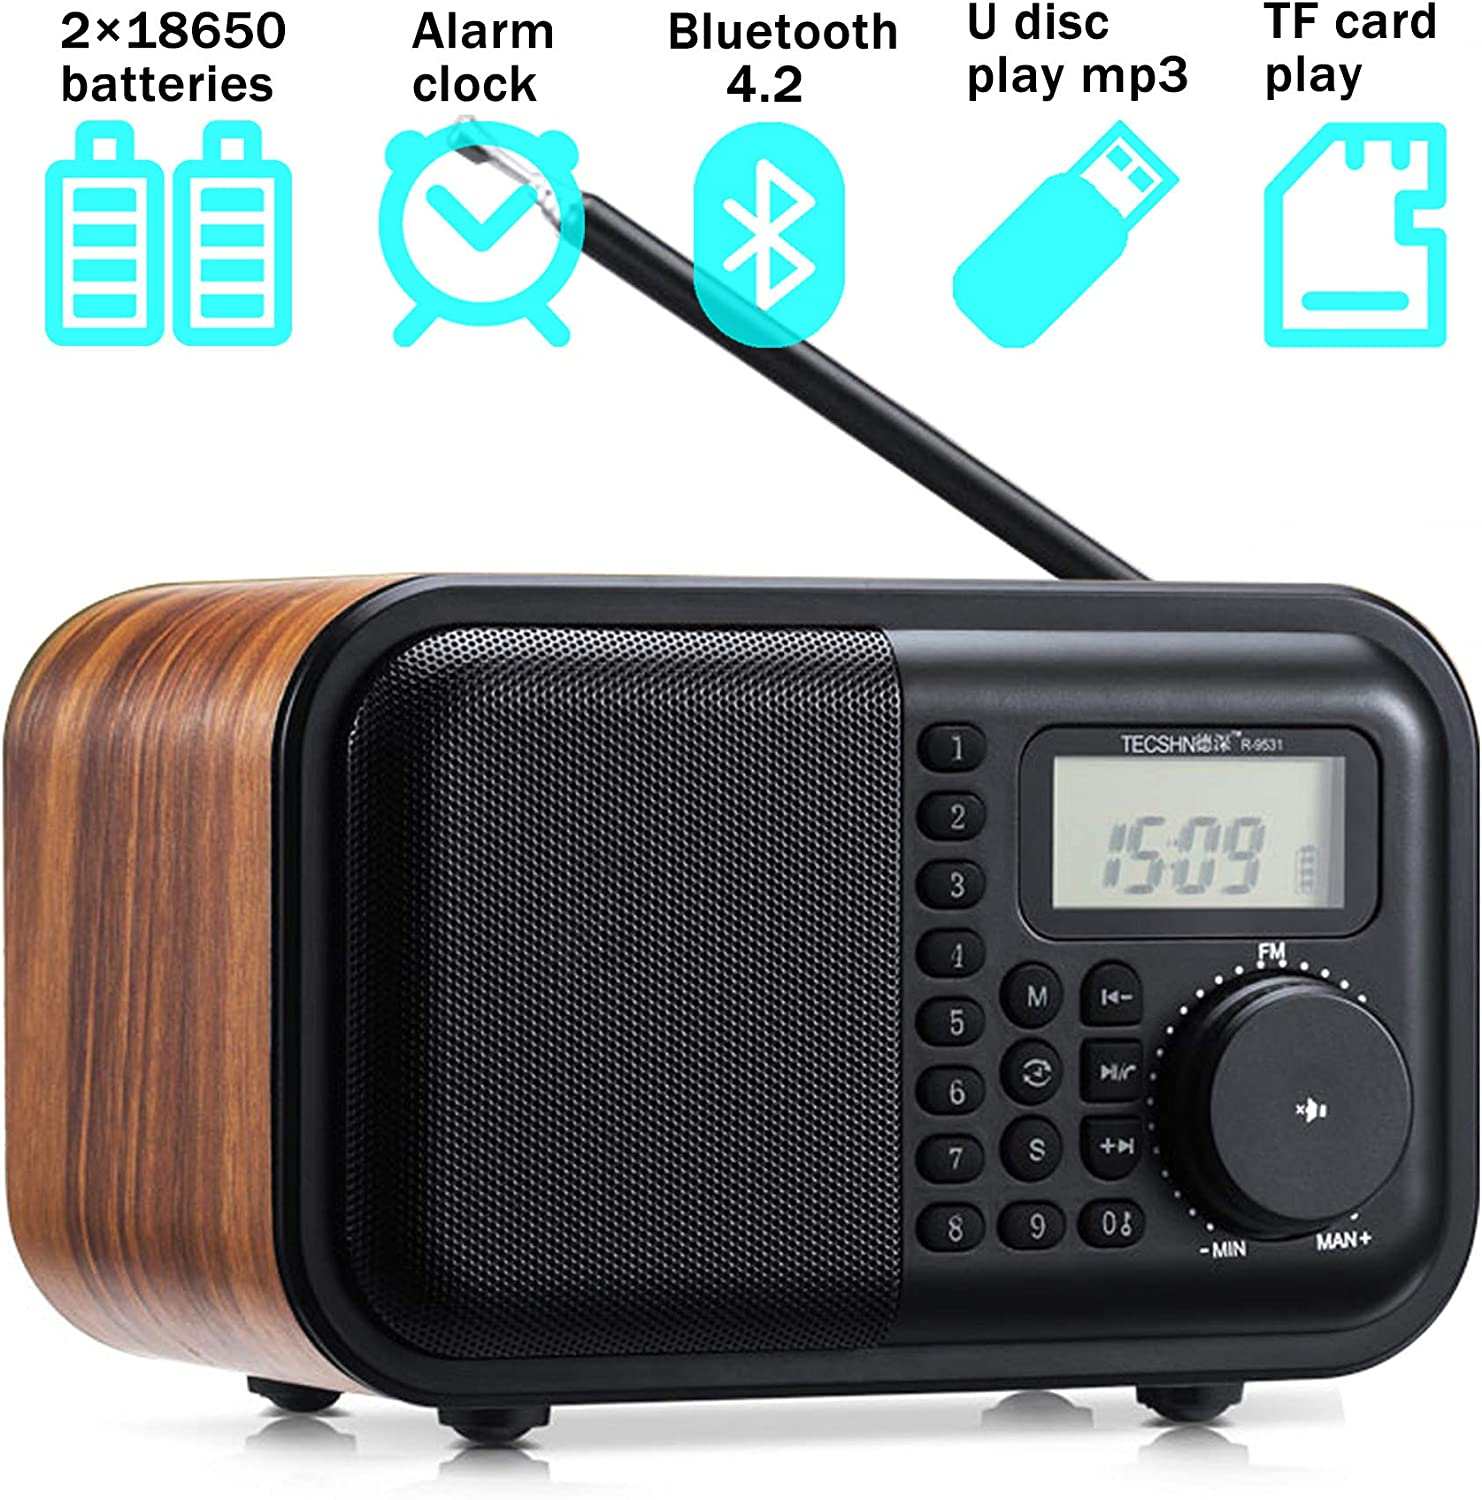 Versatile Retro Wood Grain Bluetooth Speaker FM Radio with Front Keyboard and Digital Display - Alarm Clock、Rotary Dial、Bluetooth 4.2 Speaker、USB Port、TF Card Slot、Aux-in Jack、2×18650 Batteries